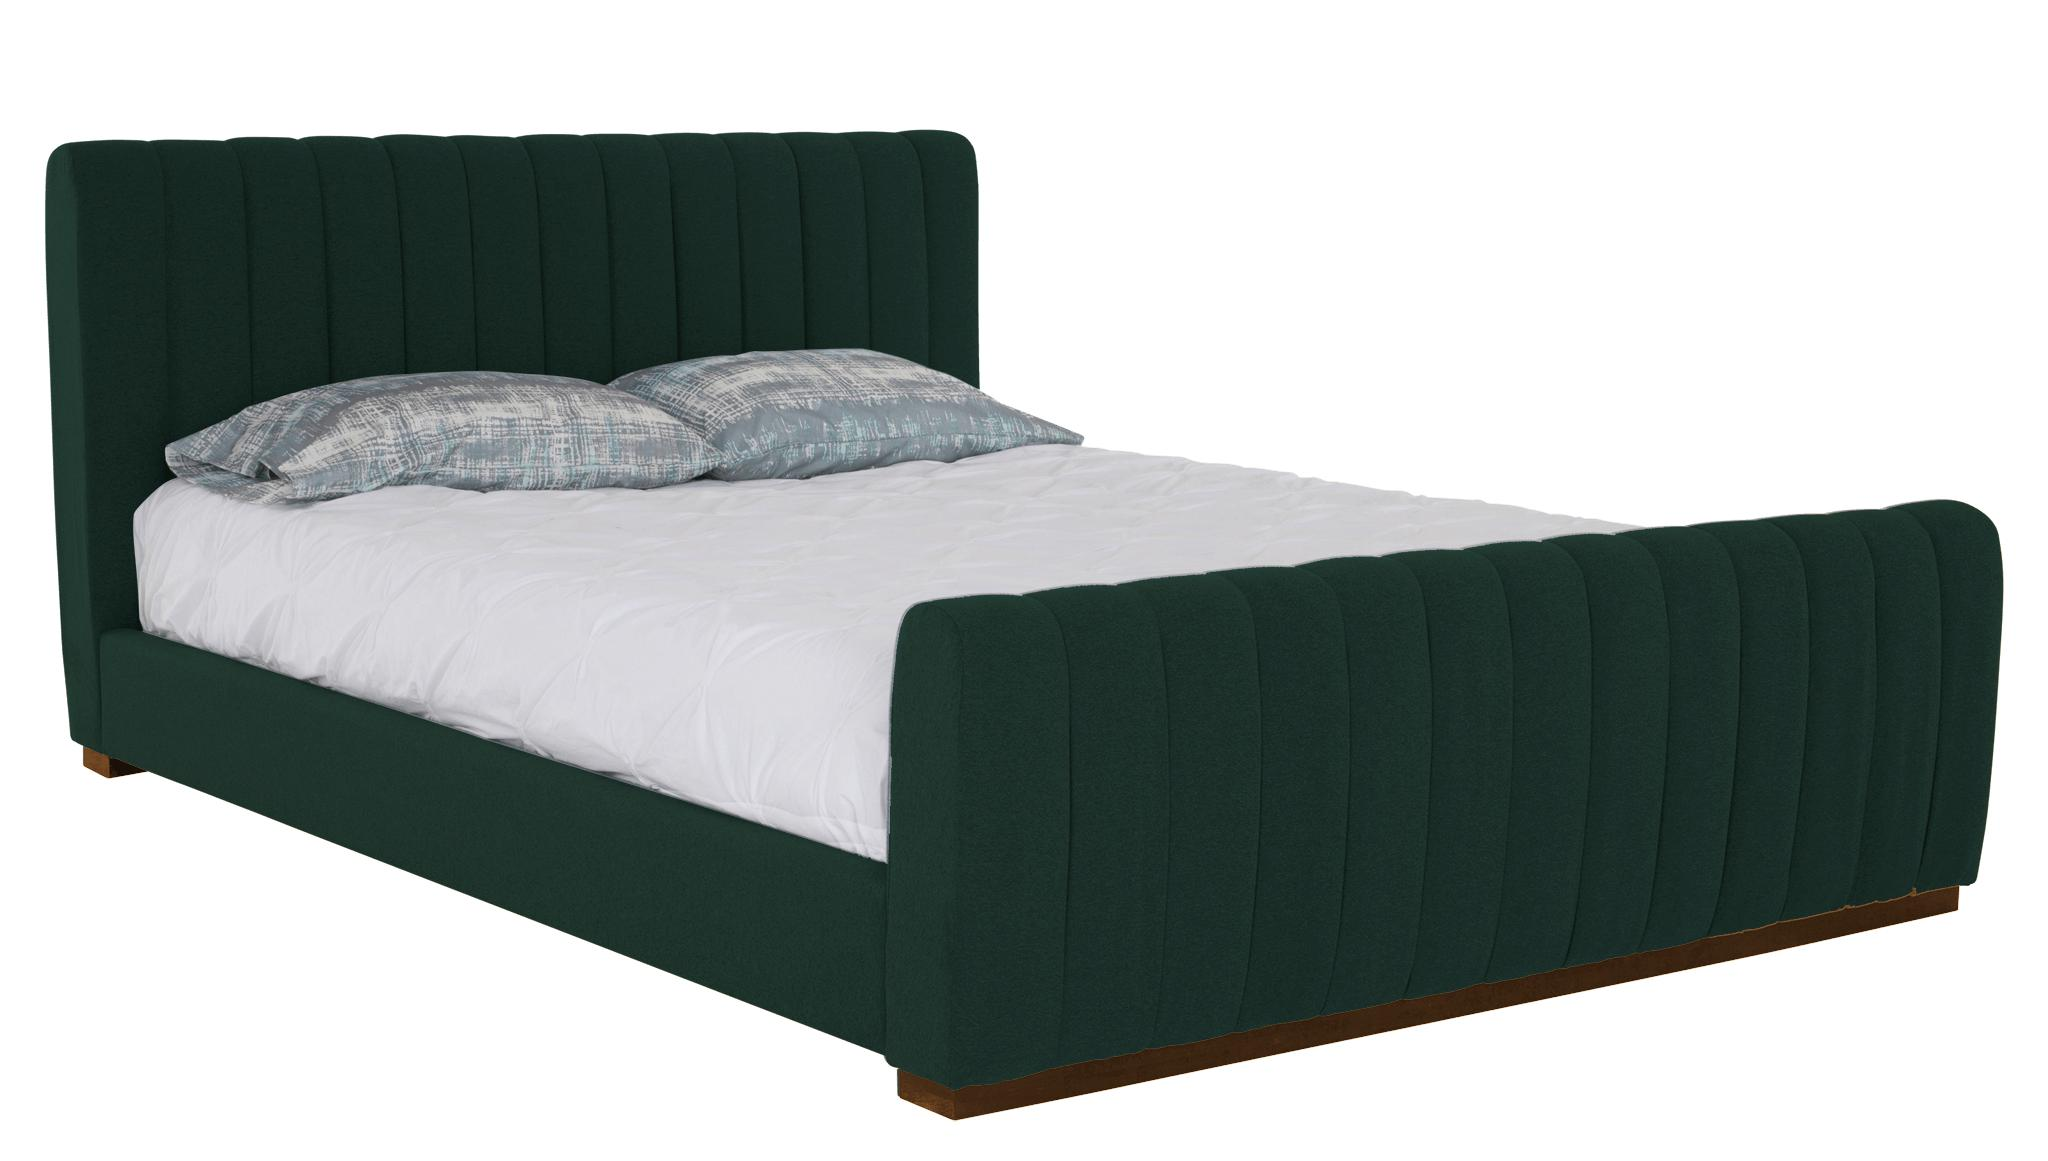 Green Camille Mid Century Modern Bed - Royale Evergreen - Mocha - Eastern King